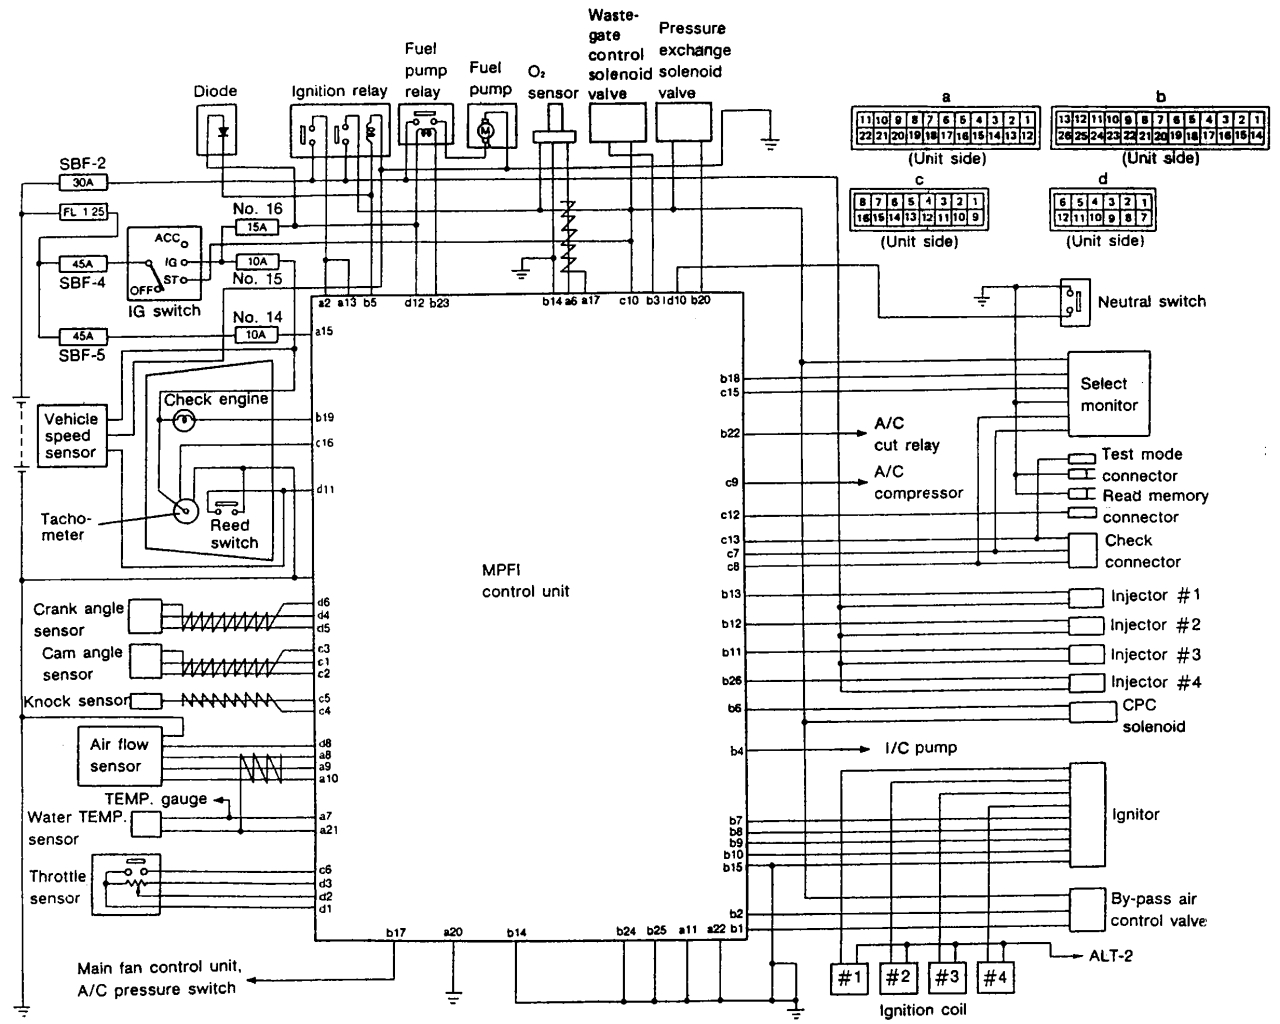 subaru engine wiring harness diagram in depth wiring diagrams u2022 rh heyhan co 2006 subaru engine wiring diagram subaru impreza engine wiring diagram